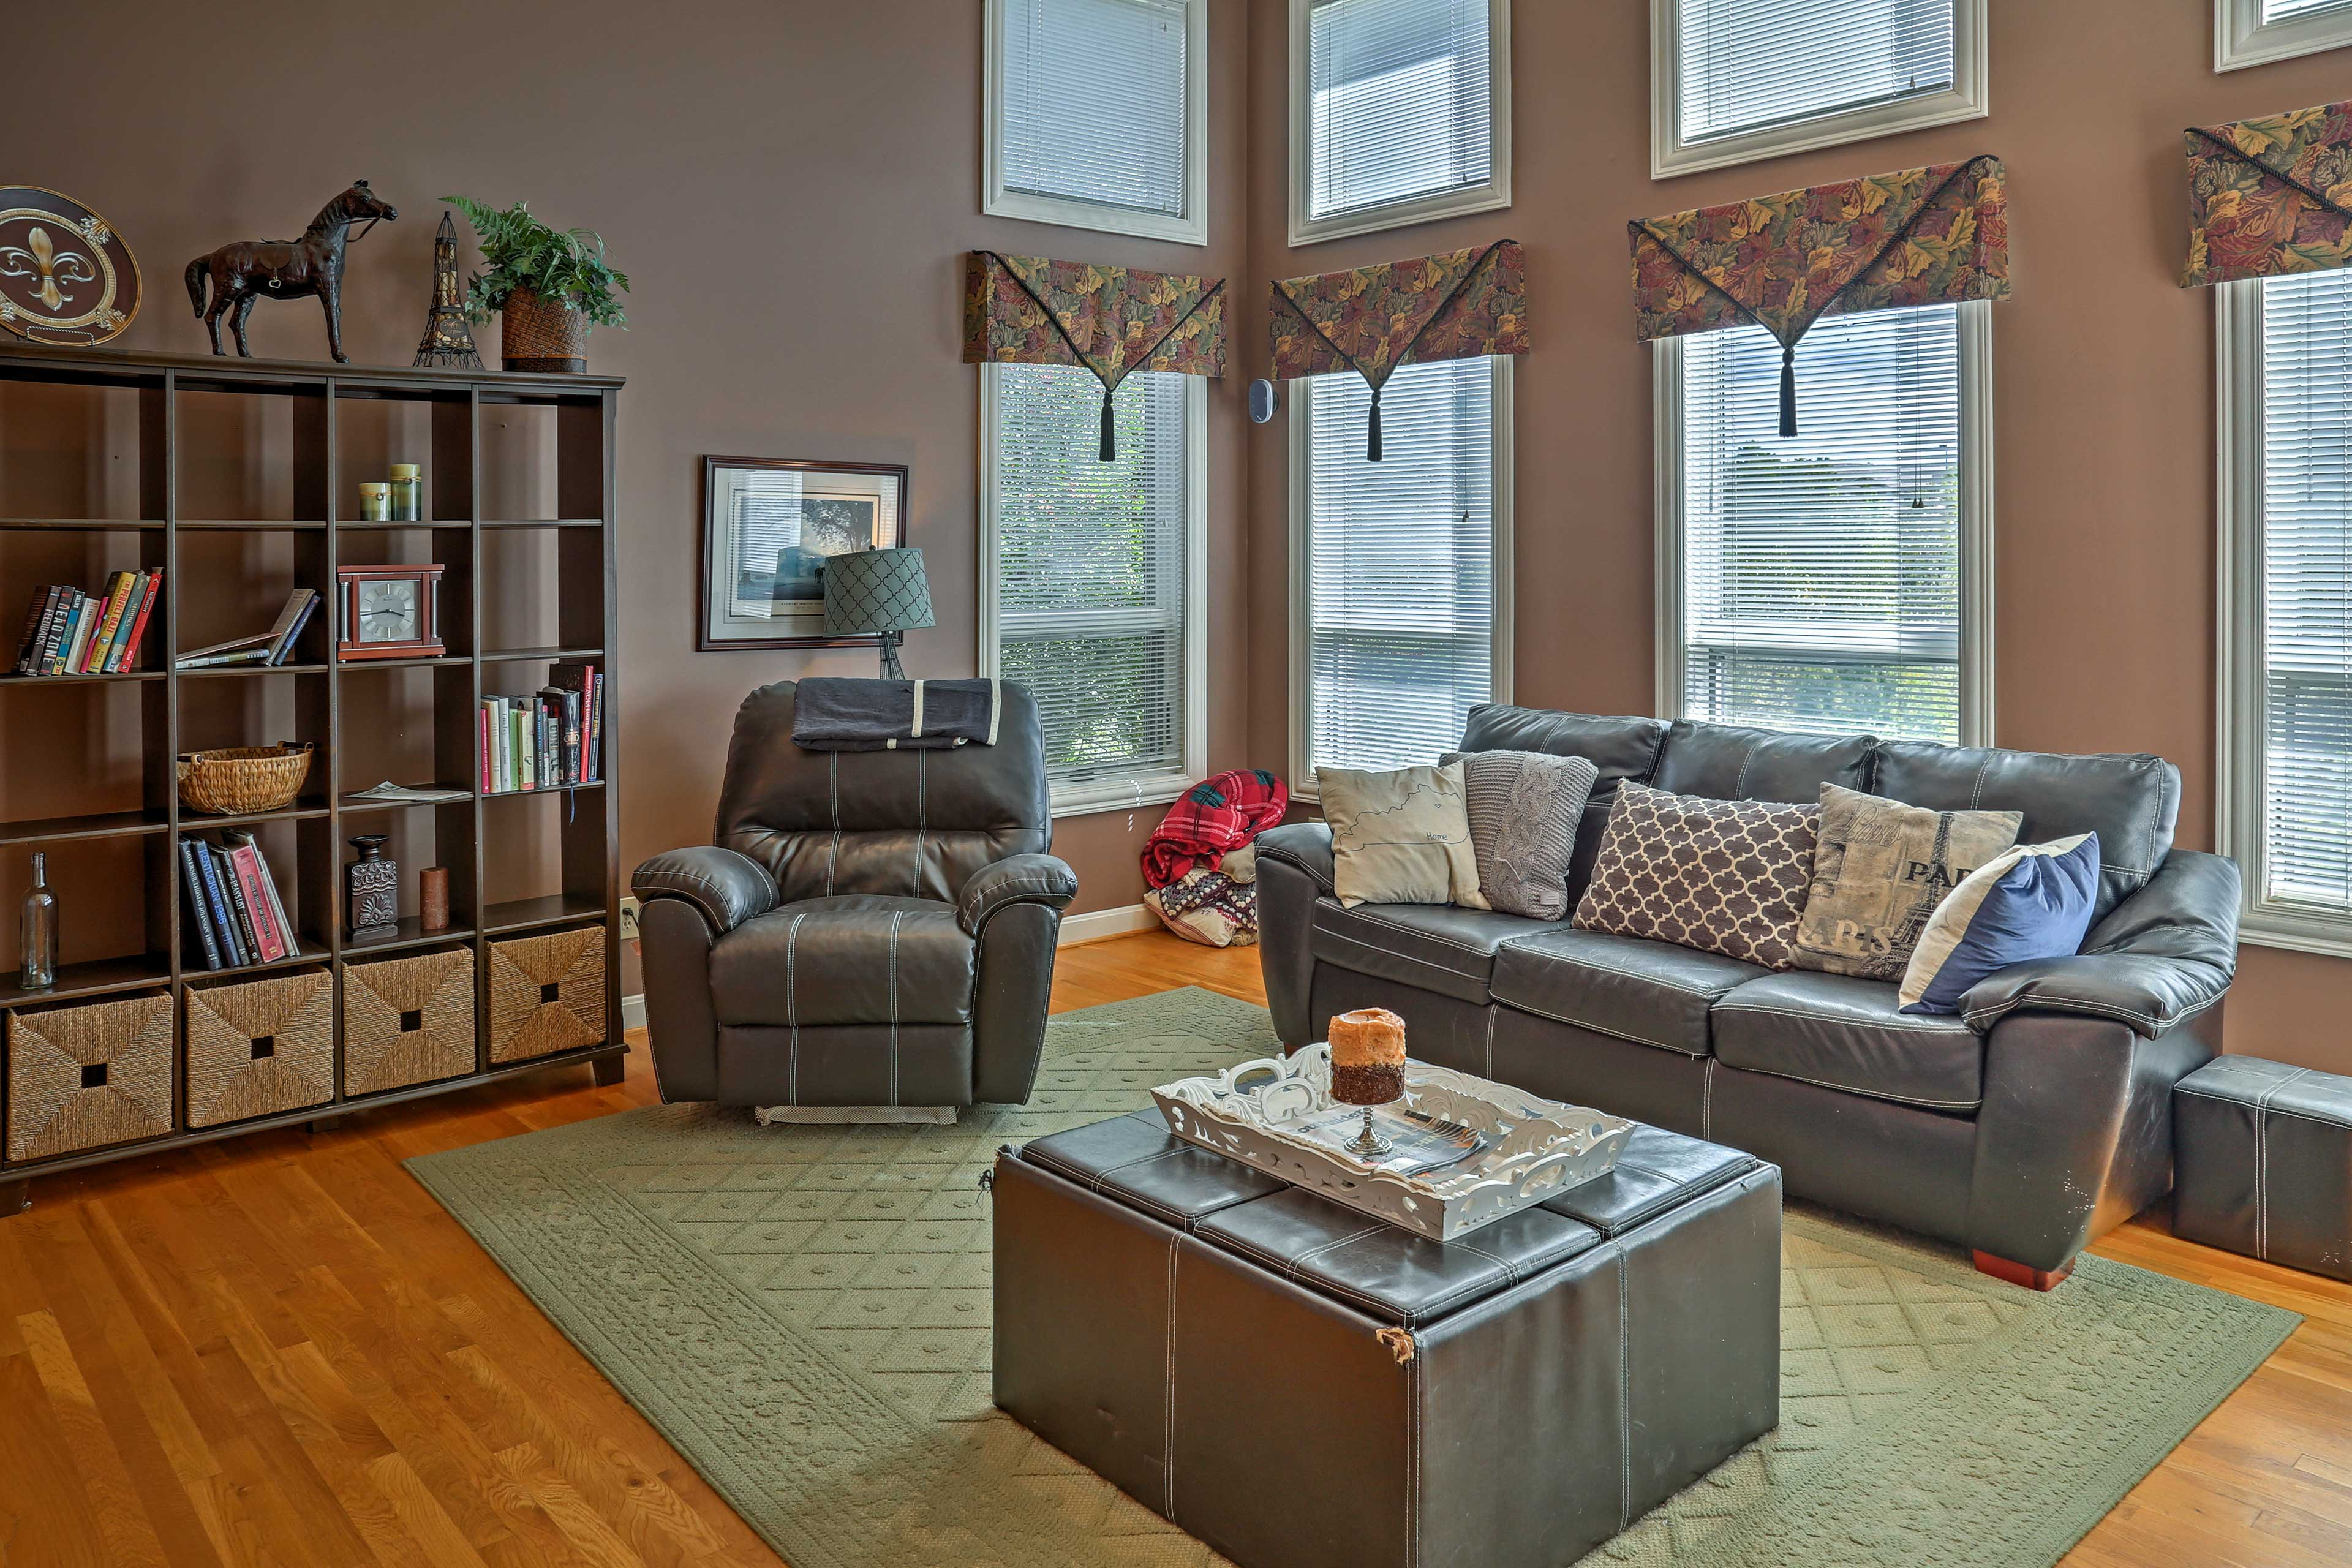 Kick back in the living room as light pours in from the floor-to-ceiling windows.